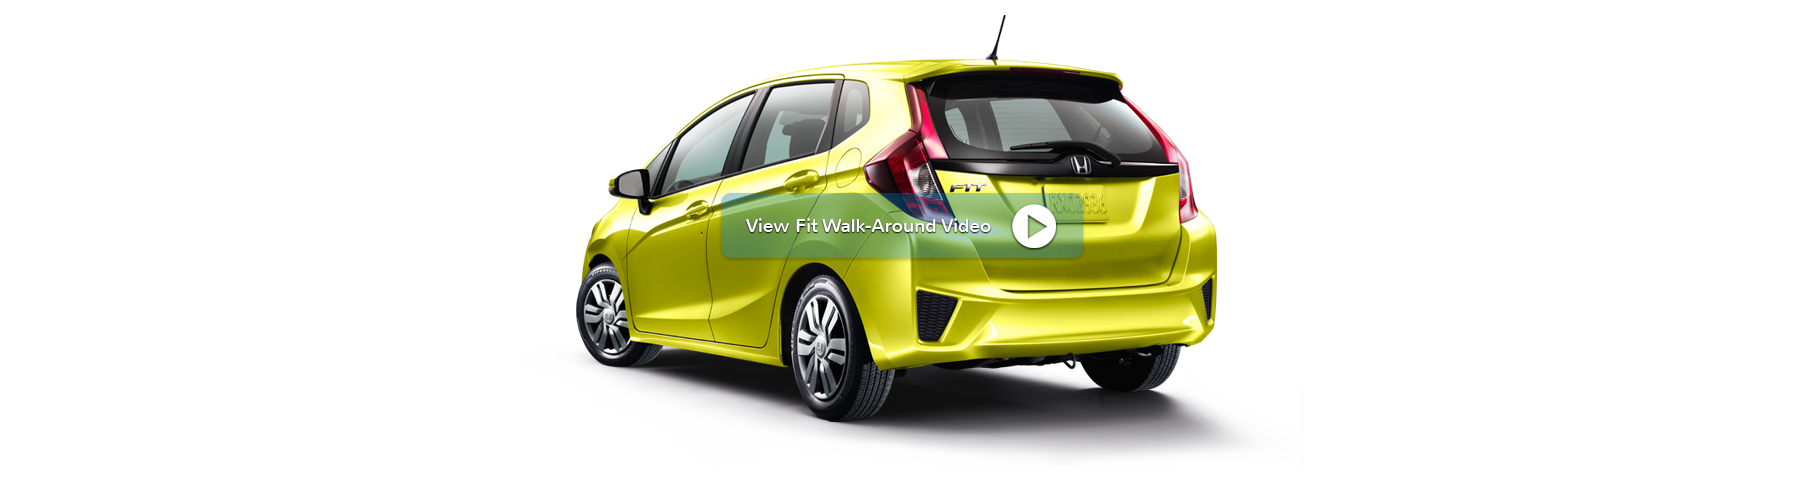 up instrumented original driver honda reviews wrap term manual automatic photo car s review test long fit and ex